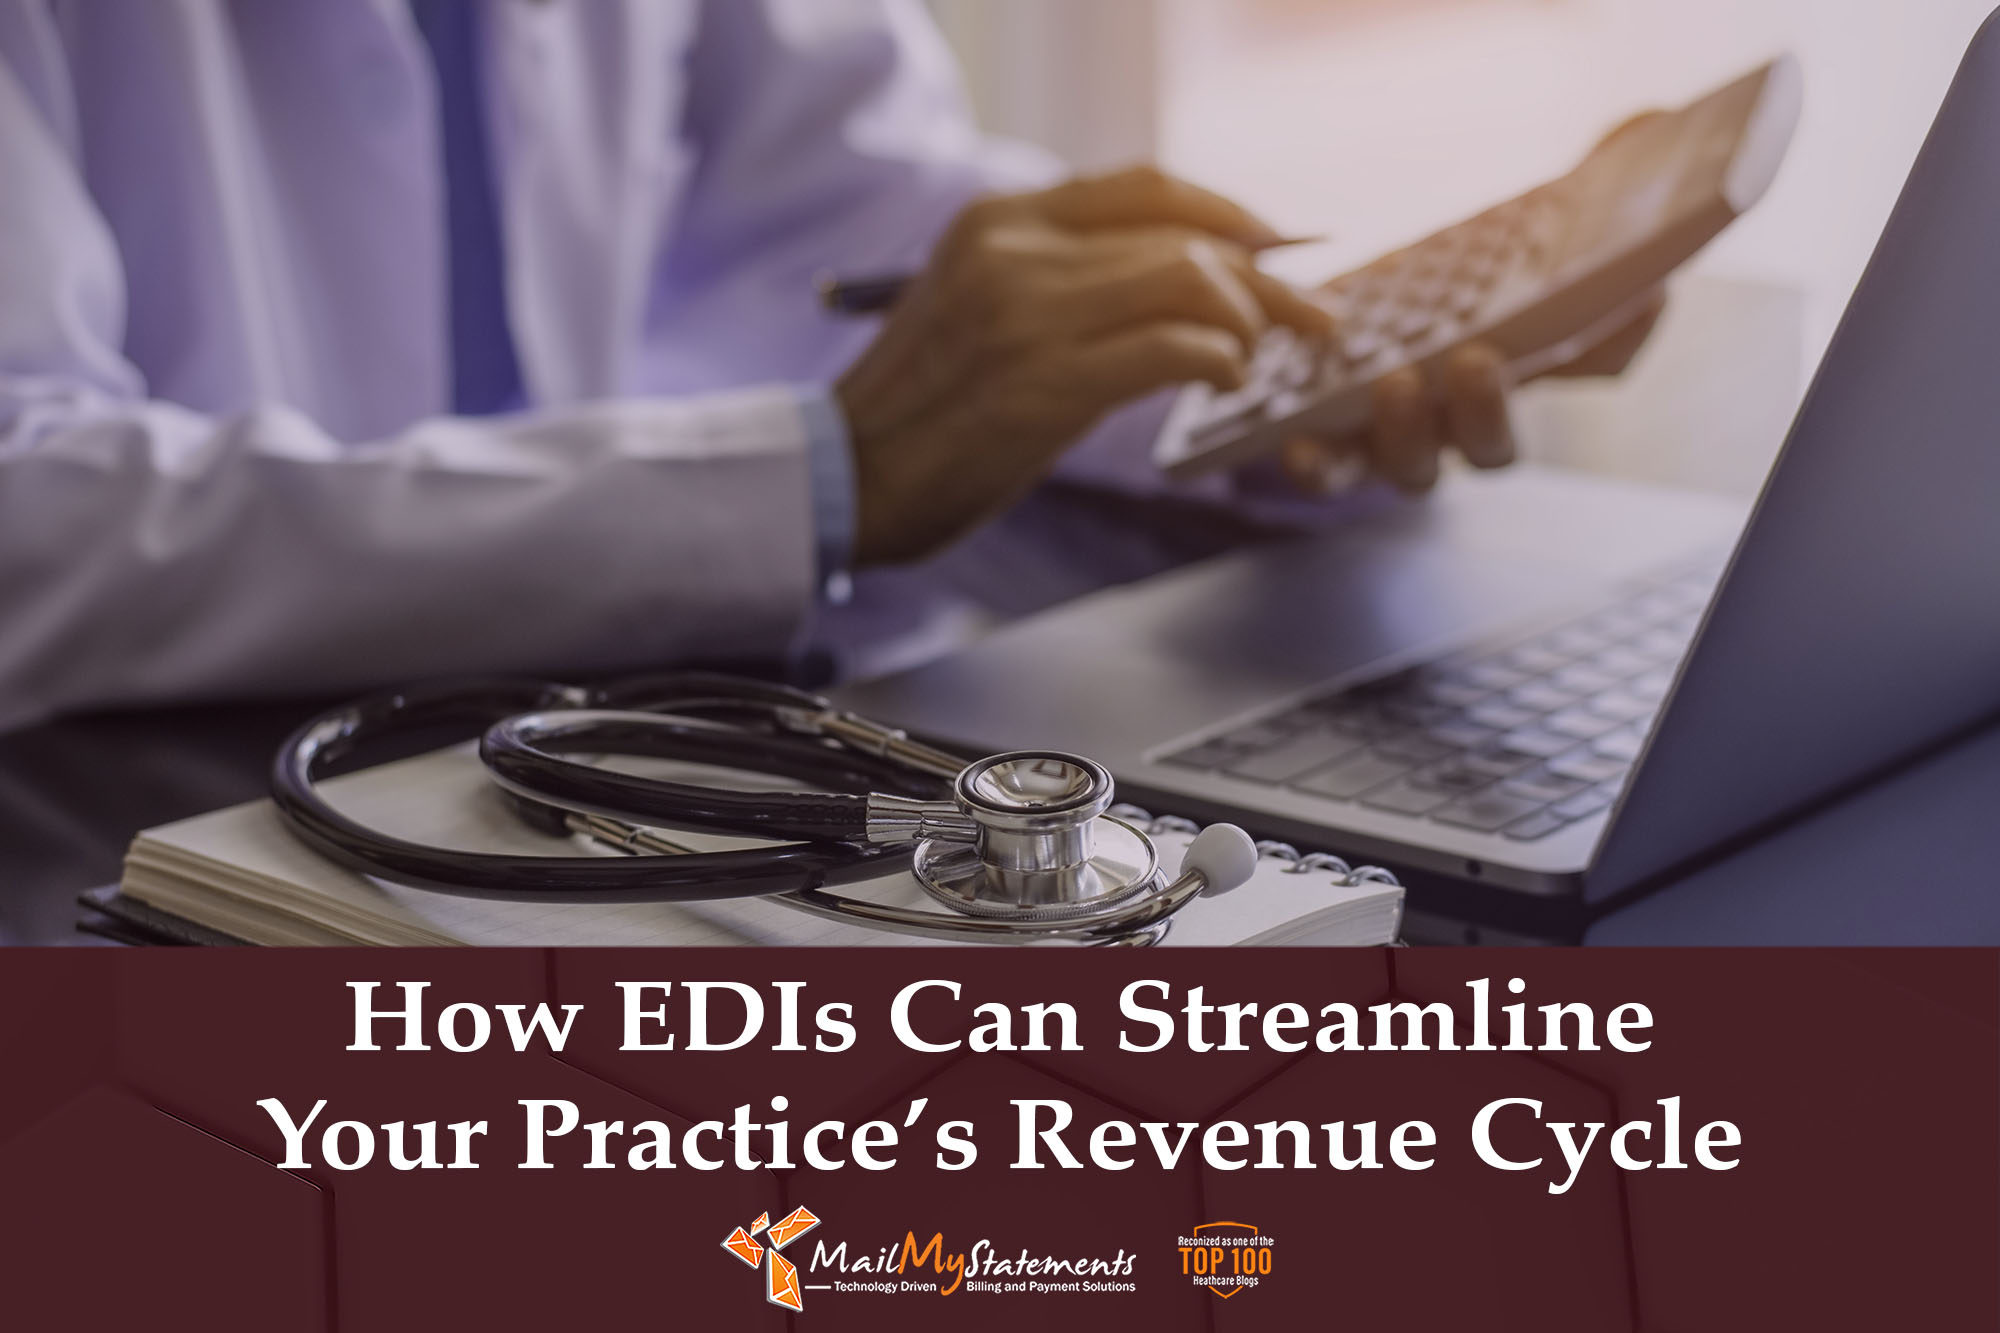 How EDIs Can Streamline Your Practice's Revenue Cycle